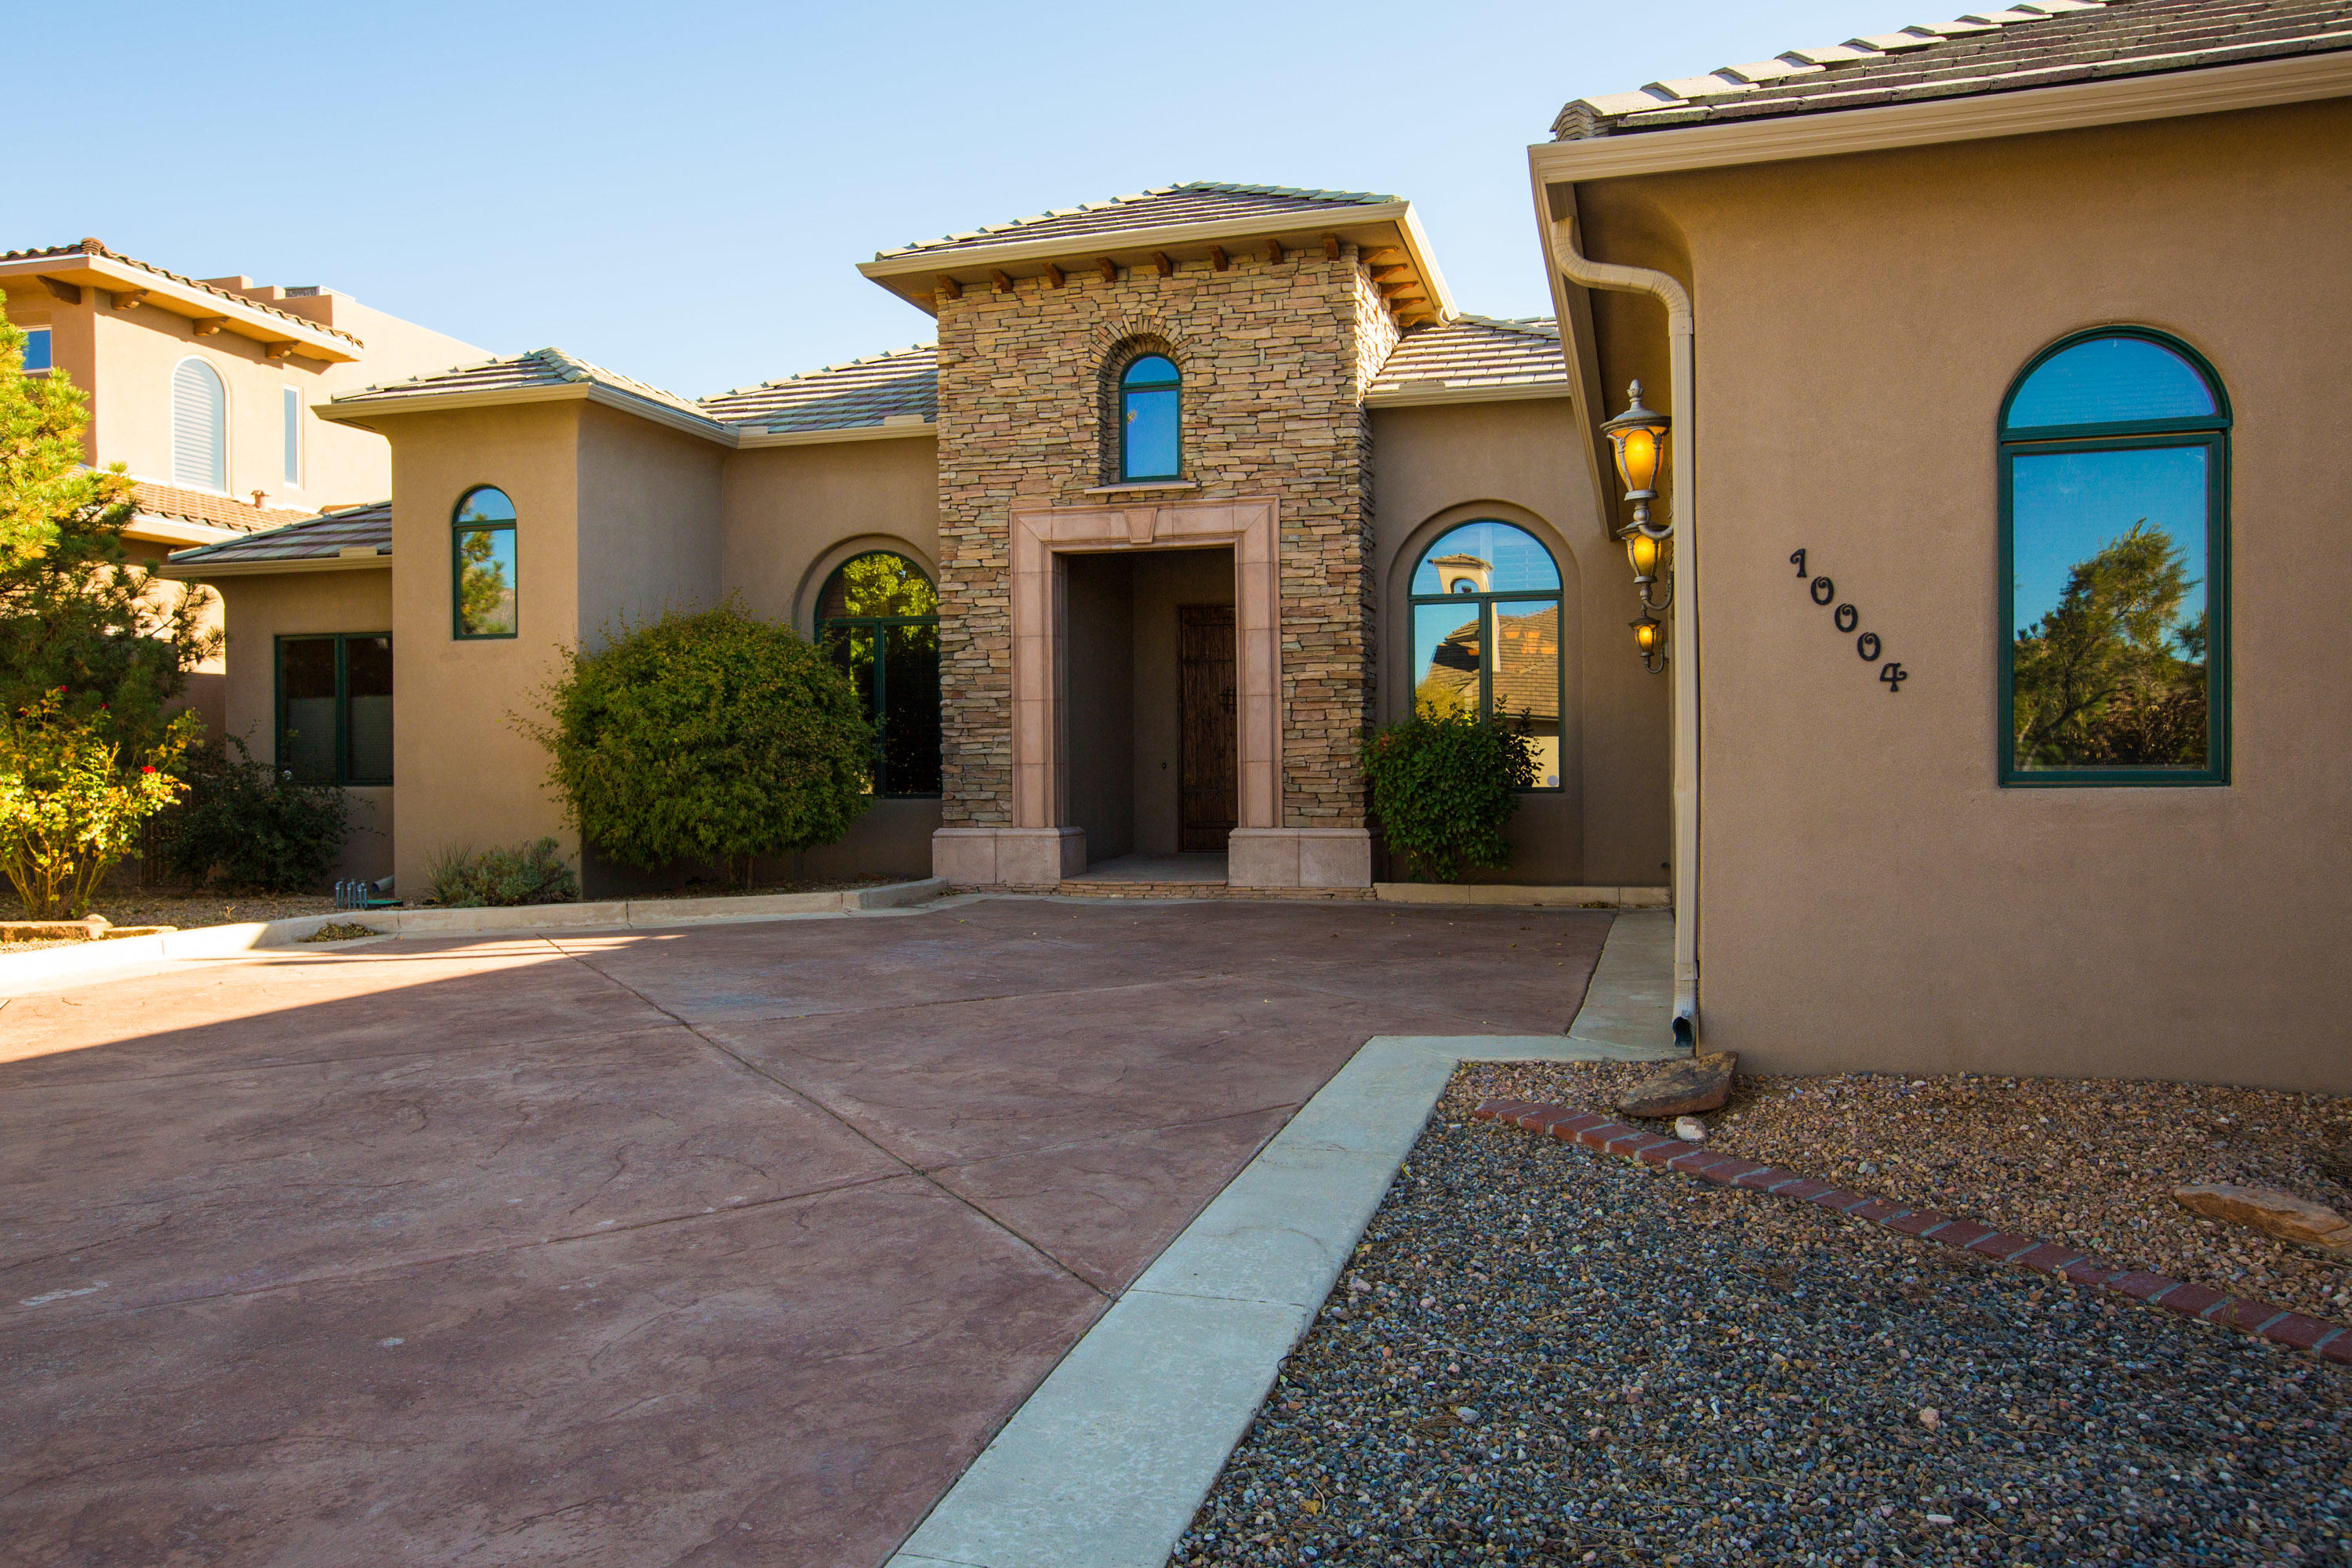 MUST SEE!- Beautiful Custom home in exclusive Ocotillo gated community in North ABQ Acres now Available! This custom built home features One Level, 4 bedrooms, 3.5 baths, and an attached 3 car garage. You'll enjoy cooking in the stunning ENTERTAINER'S DREAM of a KITCHEN w/ tons of granite slab countertop space, roomy pantry & bar which open to living area w/ views of the outside Water Feature. You'll find Custom ceilings throughout entire home, a DEN/FAMILY room that has a floor to ceiling stone FIREPLACE & double doors to the outdoor COVERED PATIO. Back inside you have large Travertine tile floors, formal & informal dining areas, an OFFICE/STUDY, large PRIVATE MASTER Bathroom w/ double sinks, soaking tub, separate shower and  walk-in closet. This gorgeous home has something for everybody!